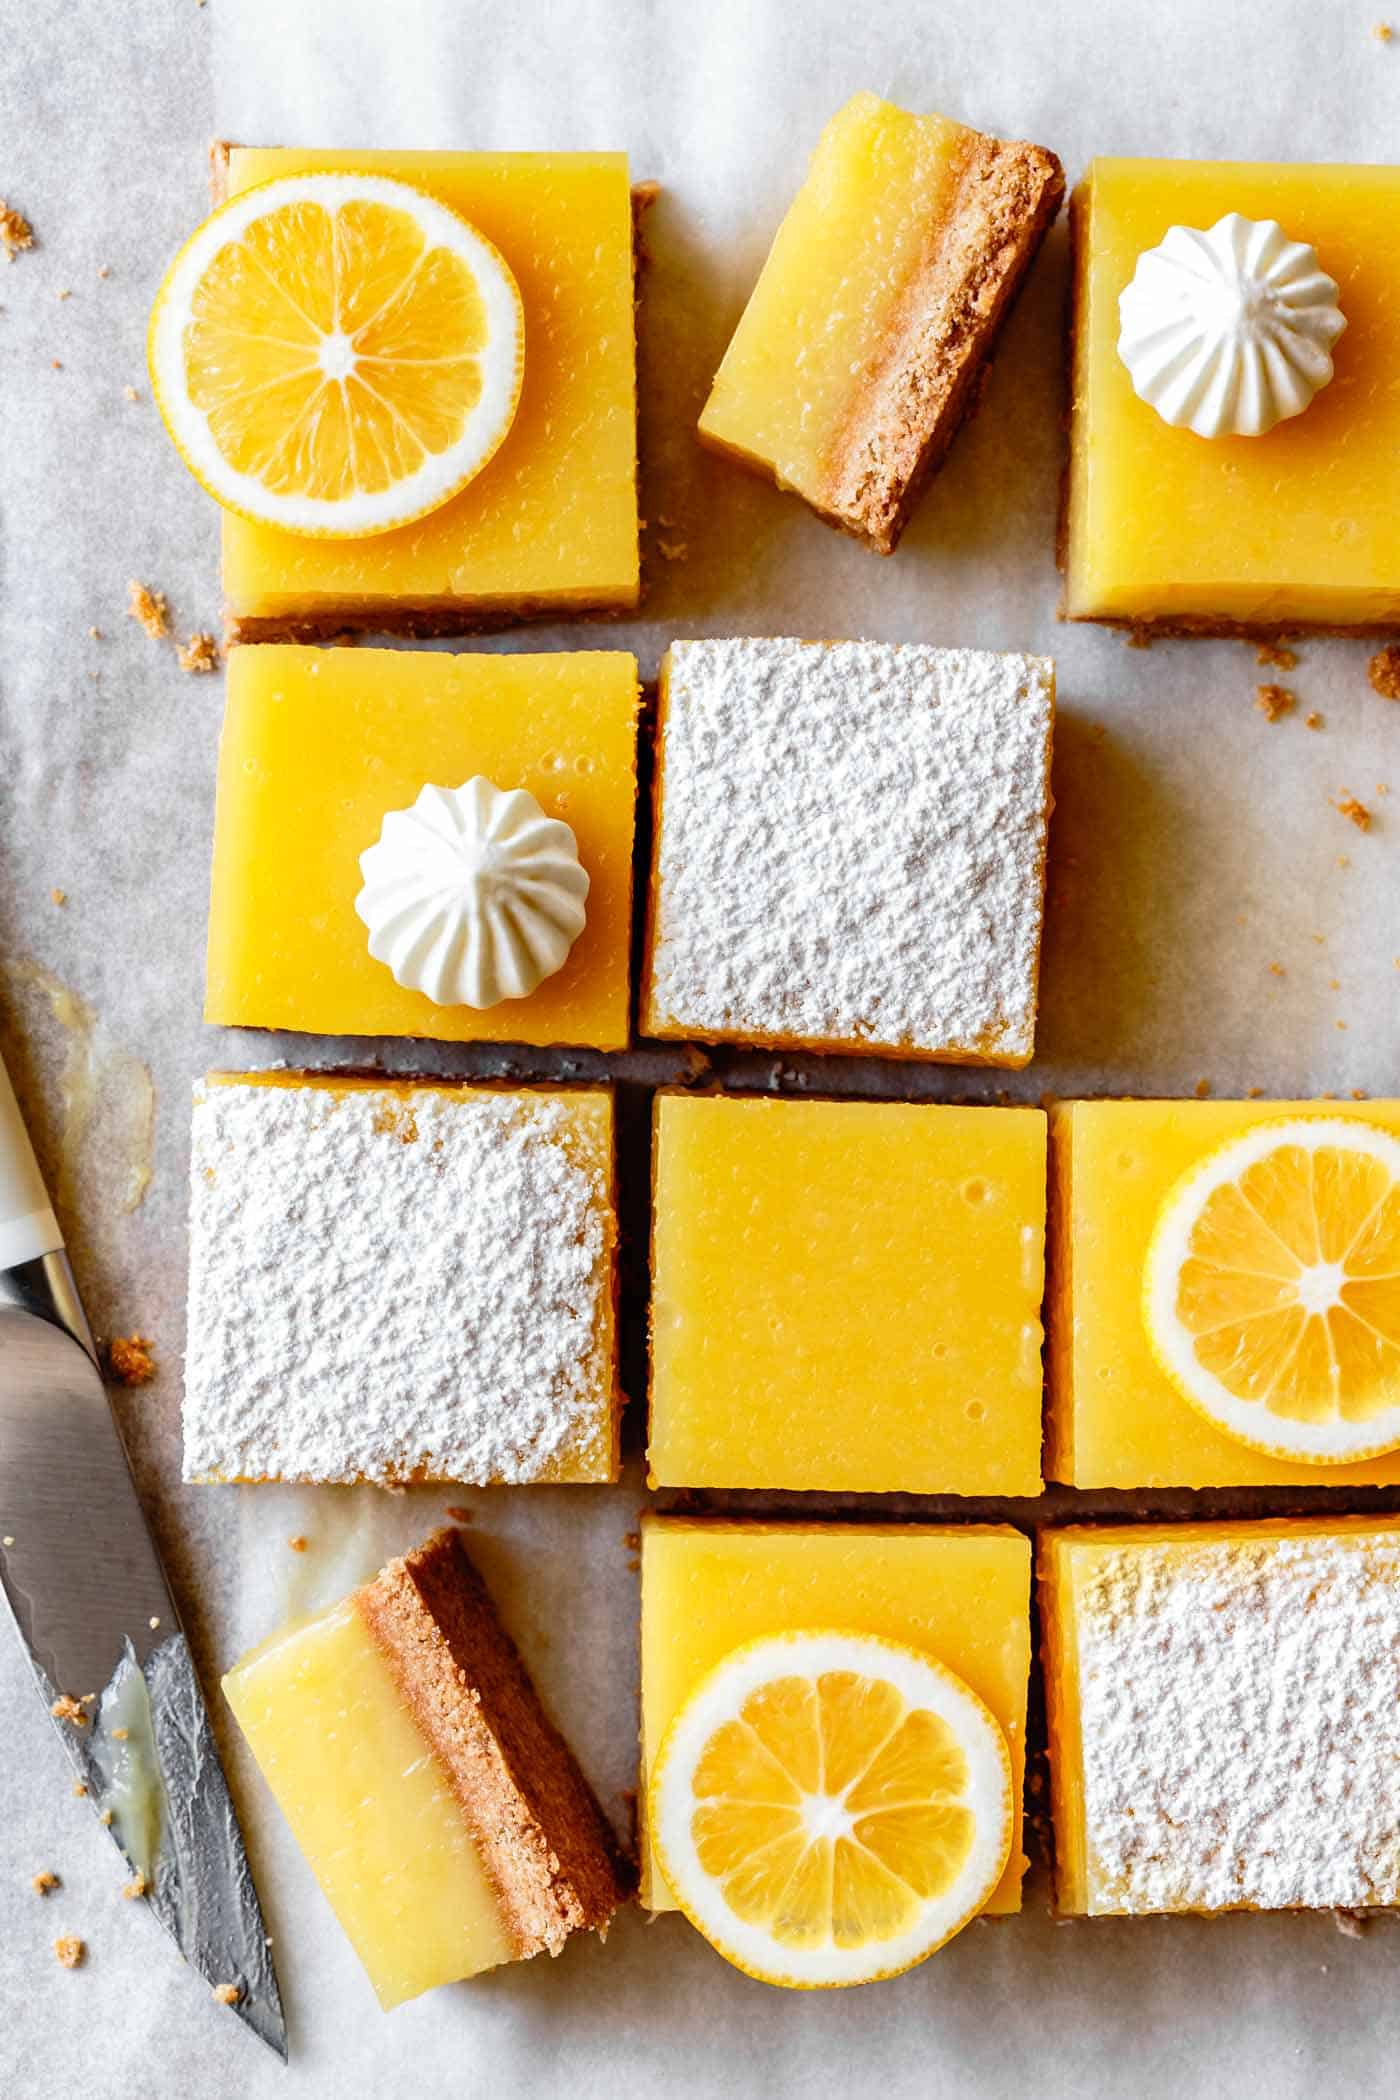 Gluten-Free Lemon Bars Recipe on a cutting board